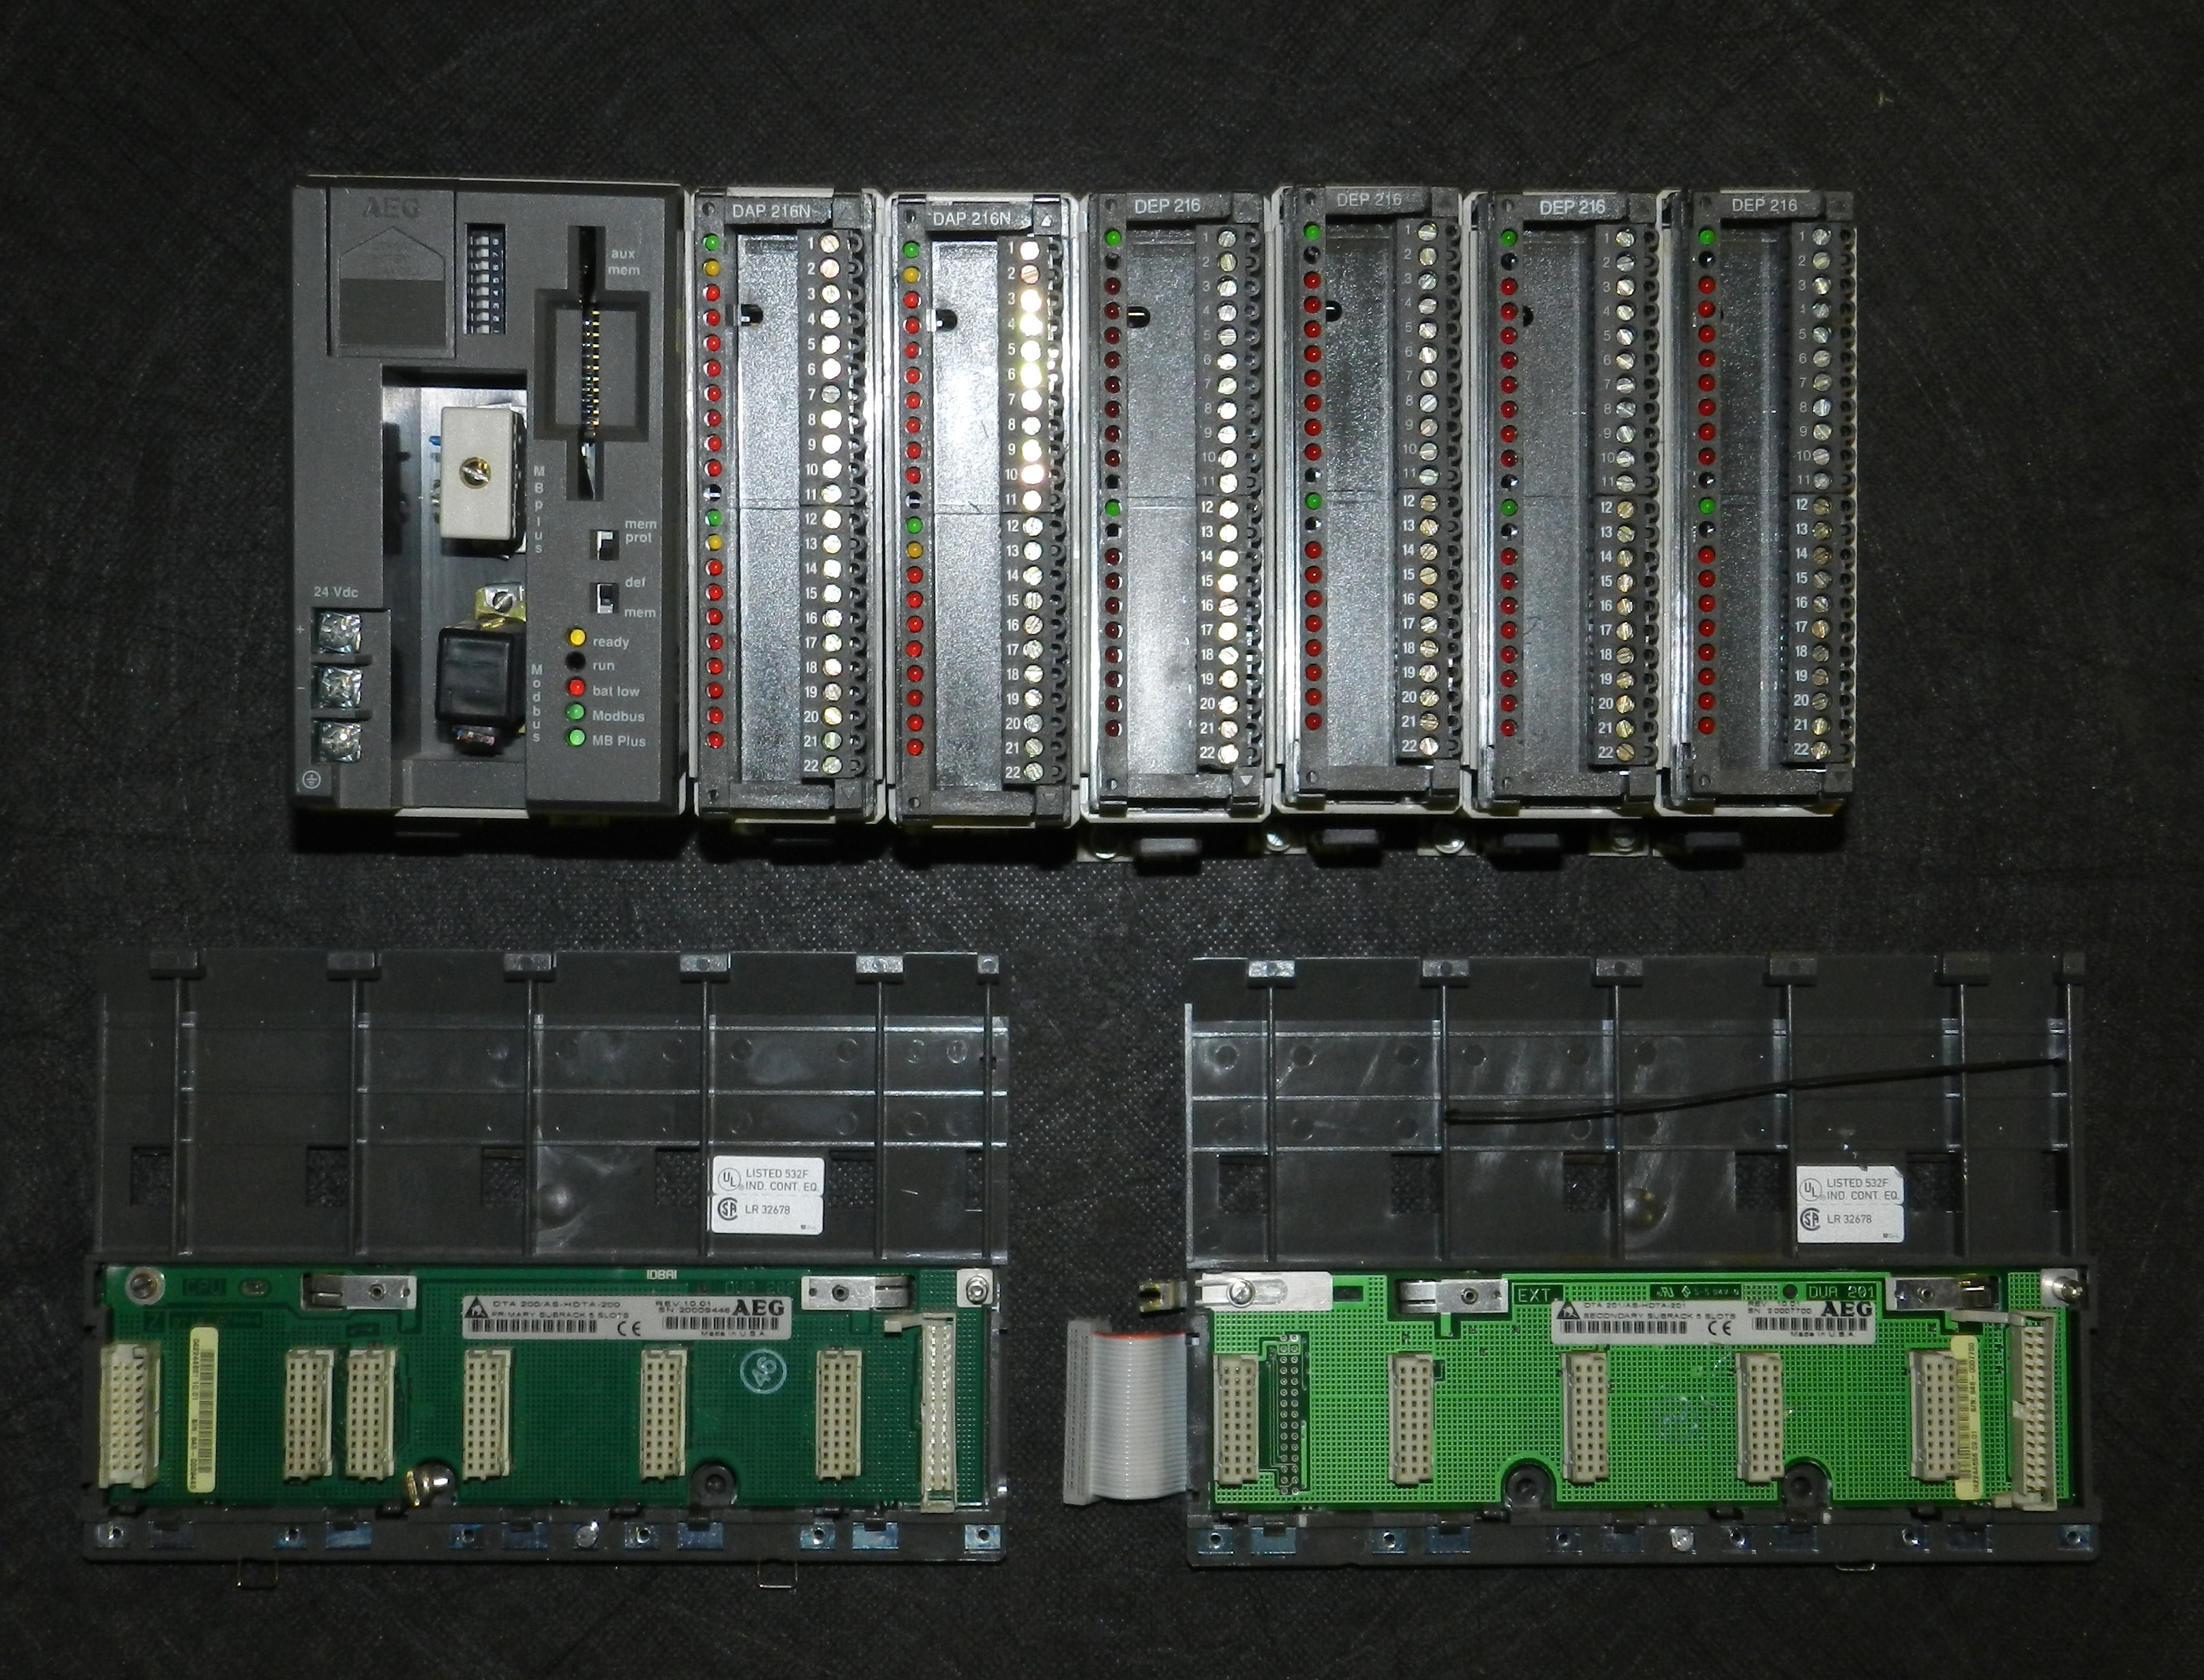 Lot 19 - AEG Modicon PC-A984-145 CPU I/O PLC Assembly Rack